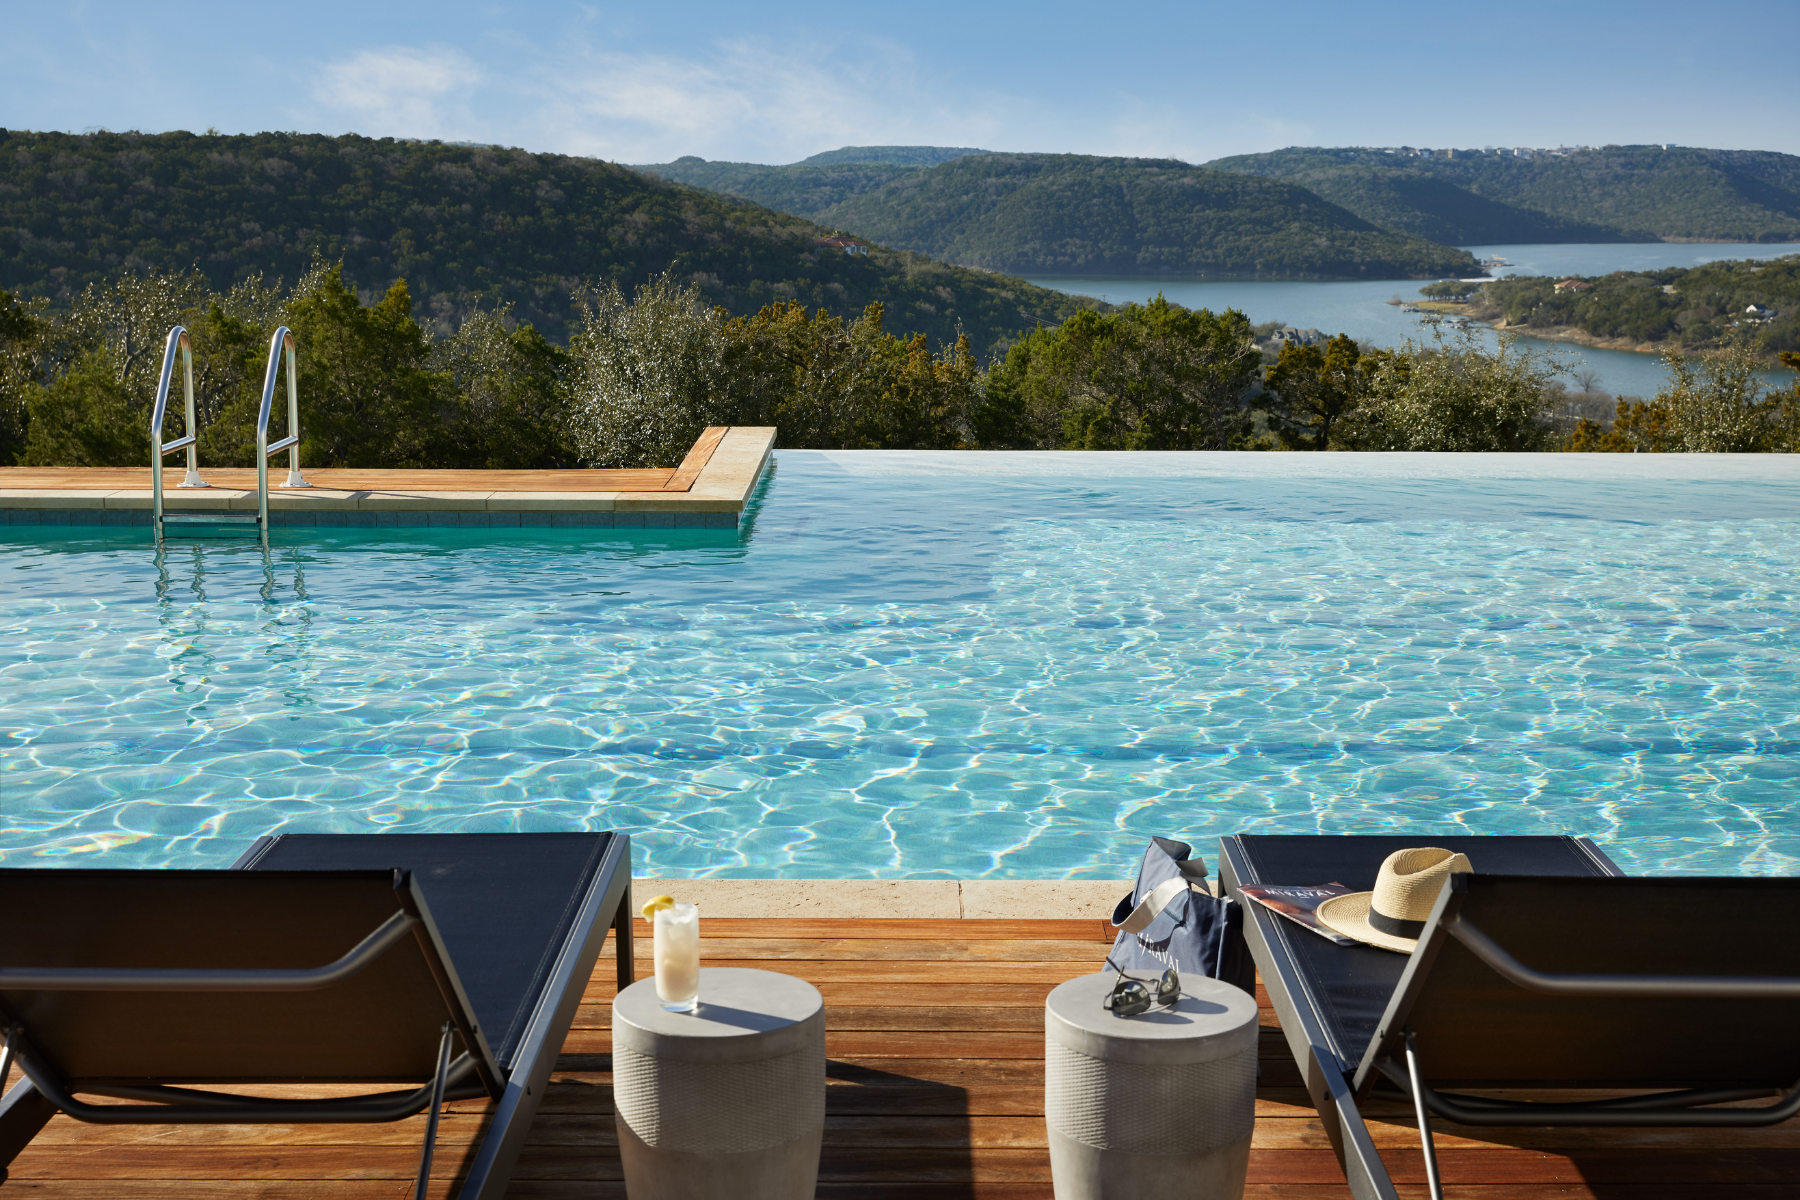 A Relaxing Retreat: 2 Days at Miraval Austin in Round Rock - D Magazine